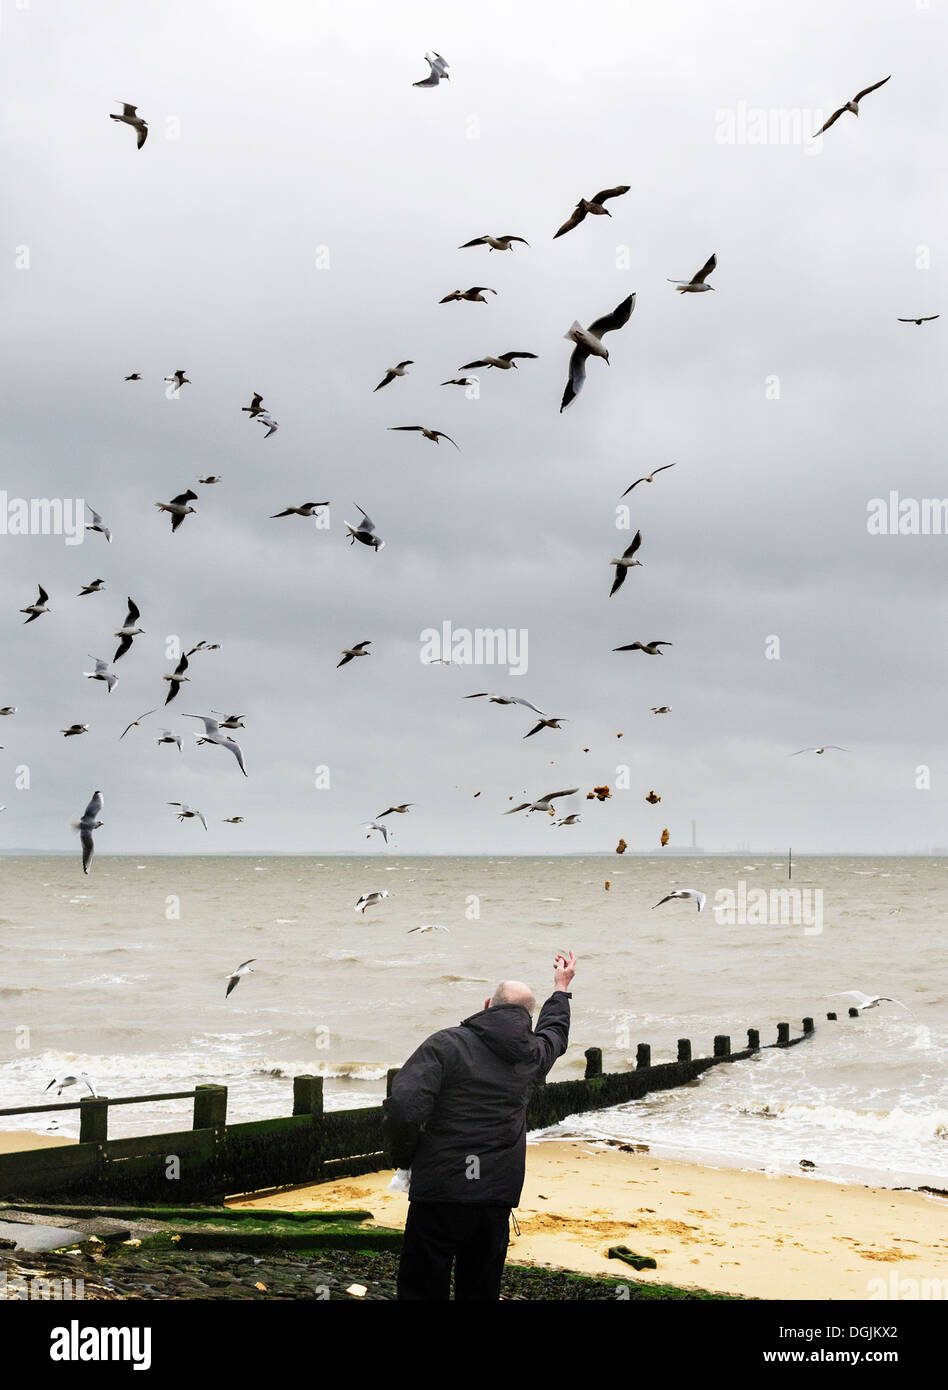 A man feeding seagulls on the seafront at Southend in Essex. - Stock Image